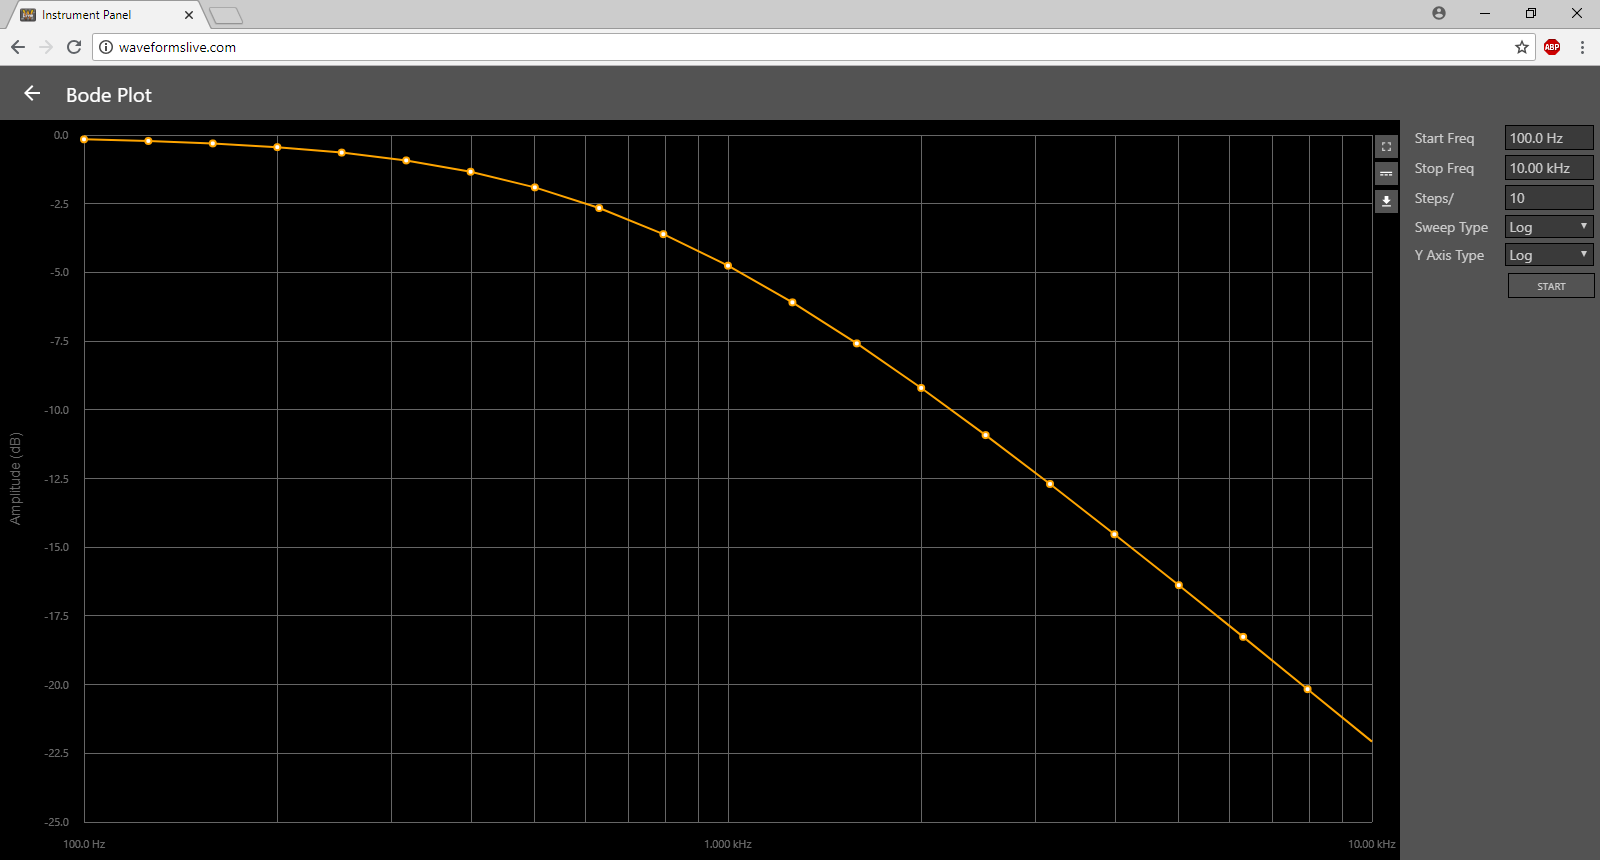 Go Wireless With Waveforms Live Digilent Inc Blog Rclowpassfiltercircuitdiagramjpg Another Useful Feature Is Bode Plots To Graph The Frequency Response Of A Circuit Below Plot Low Pass Filter